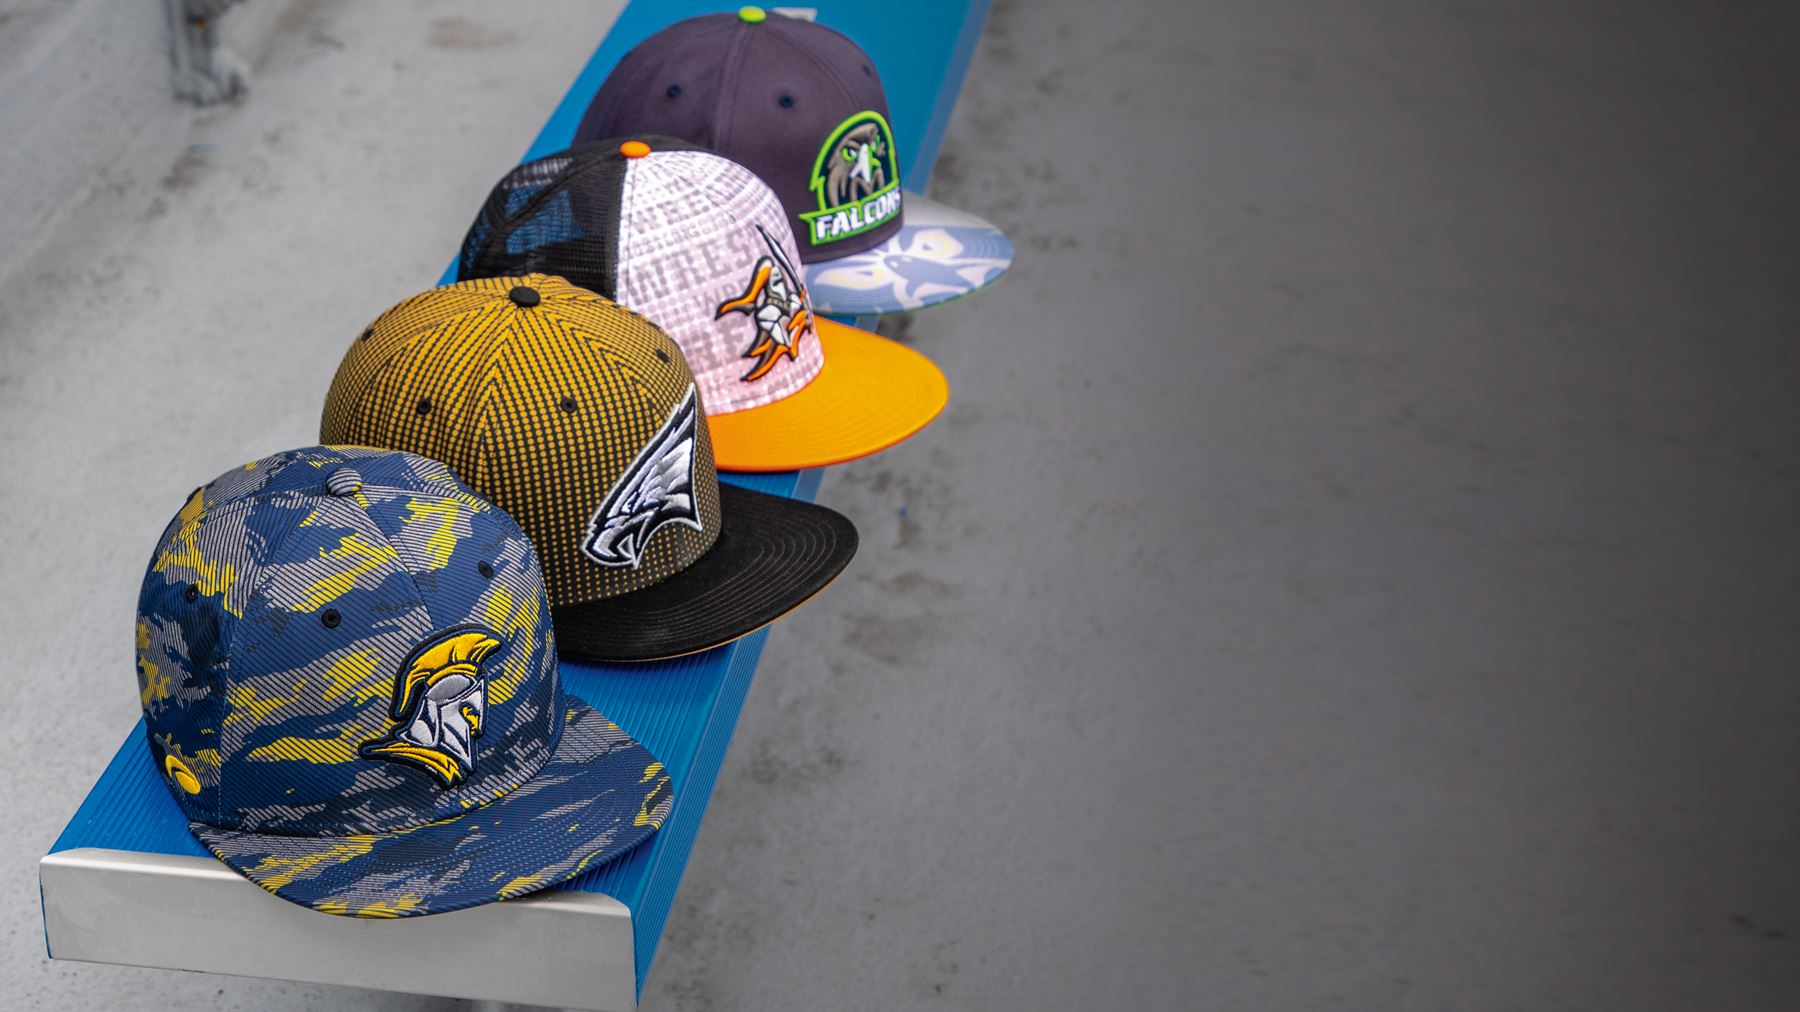 Pukka Hats lined up on a bench